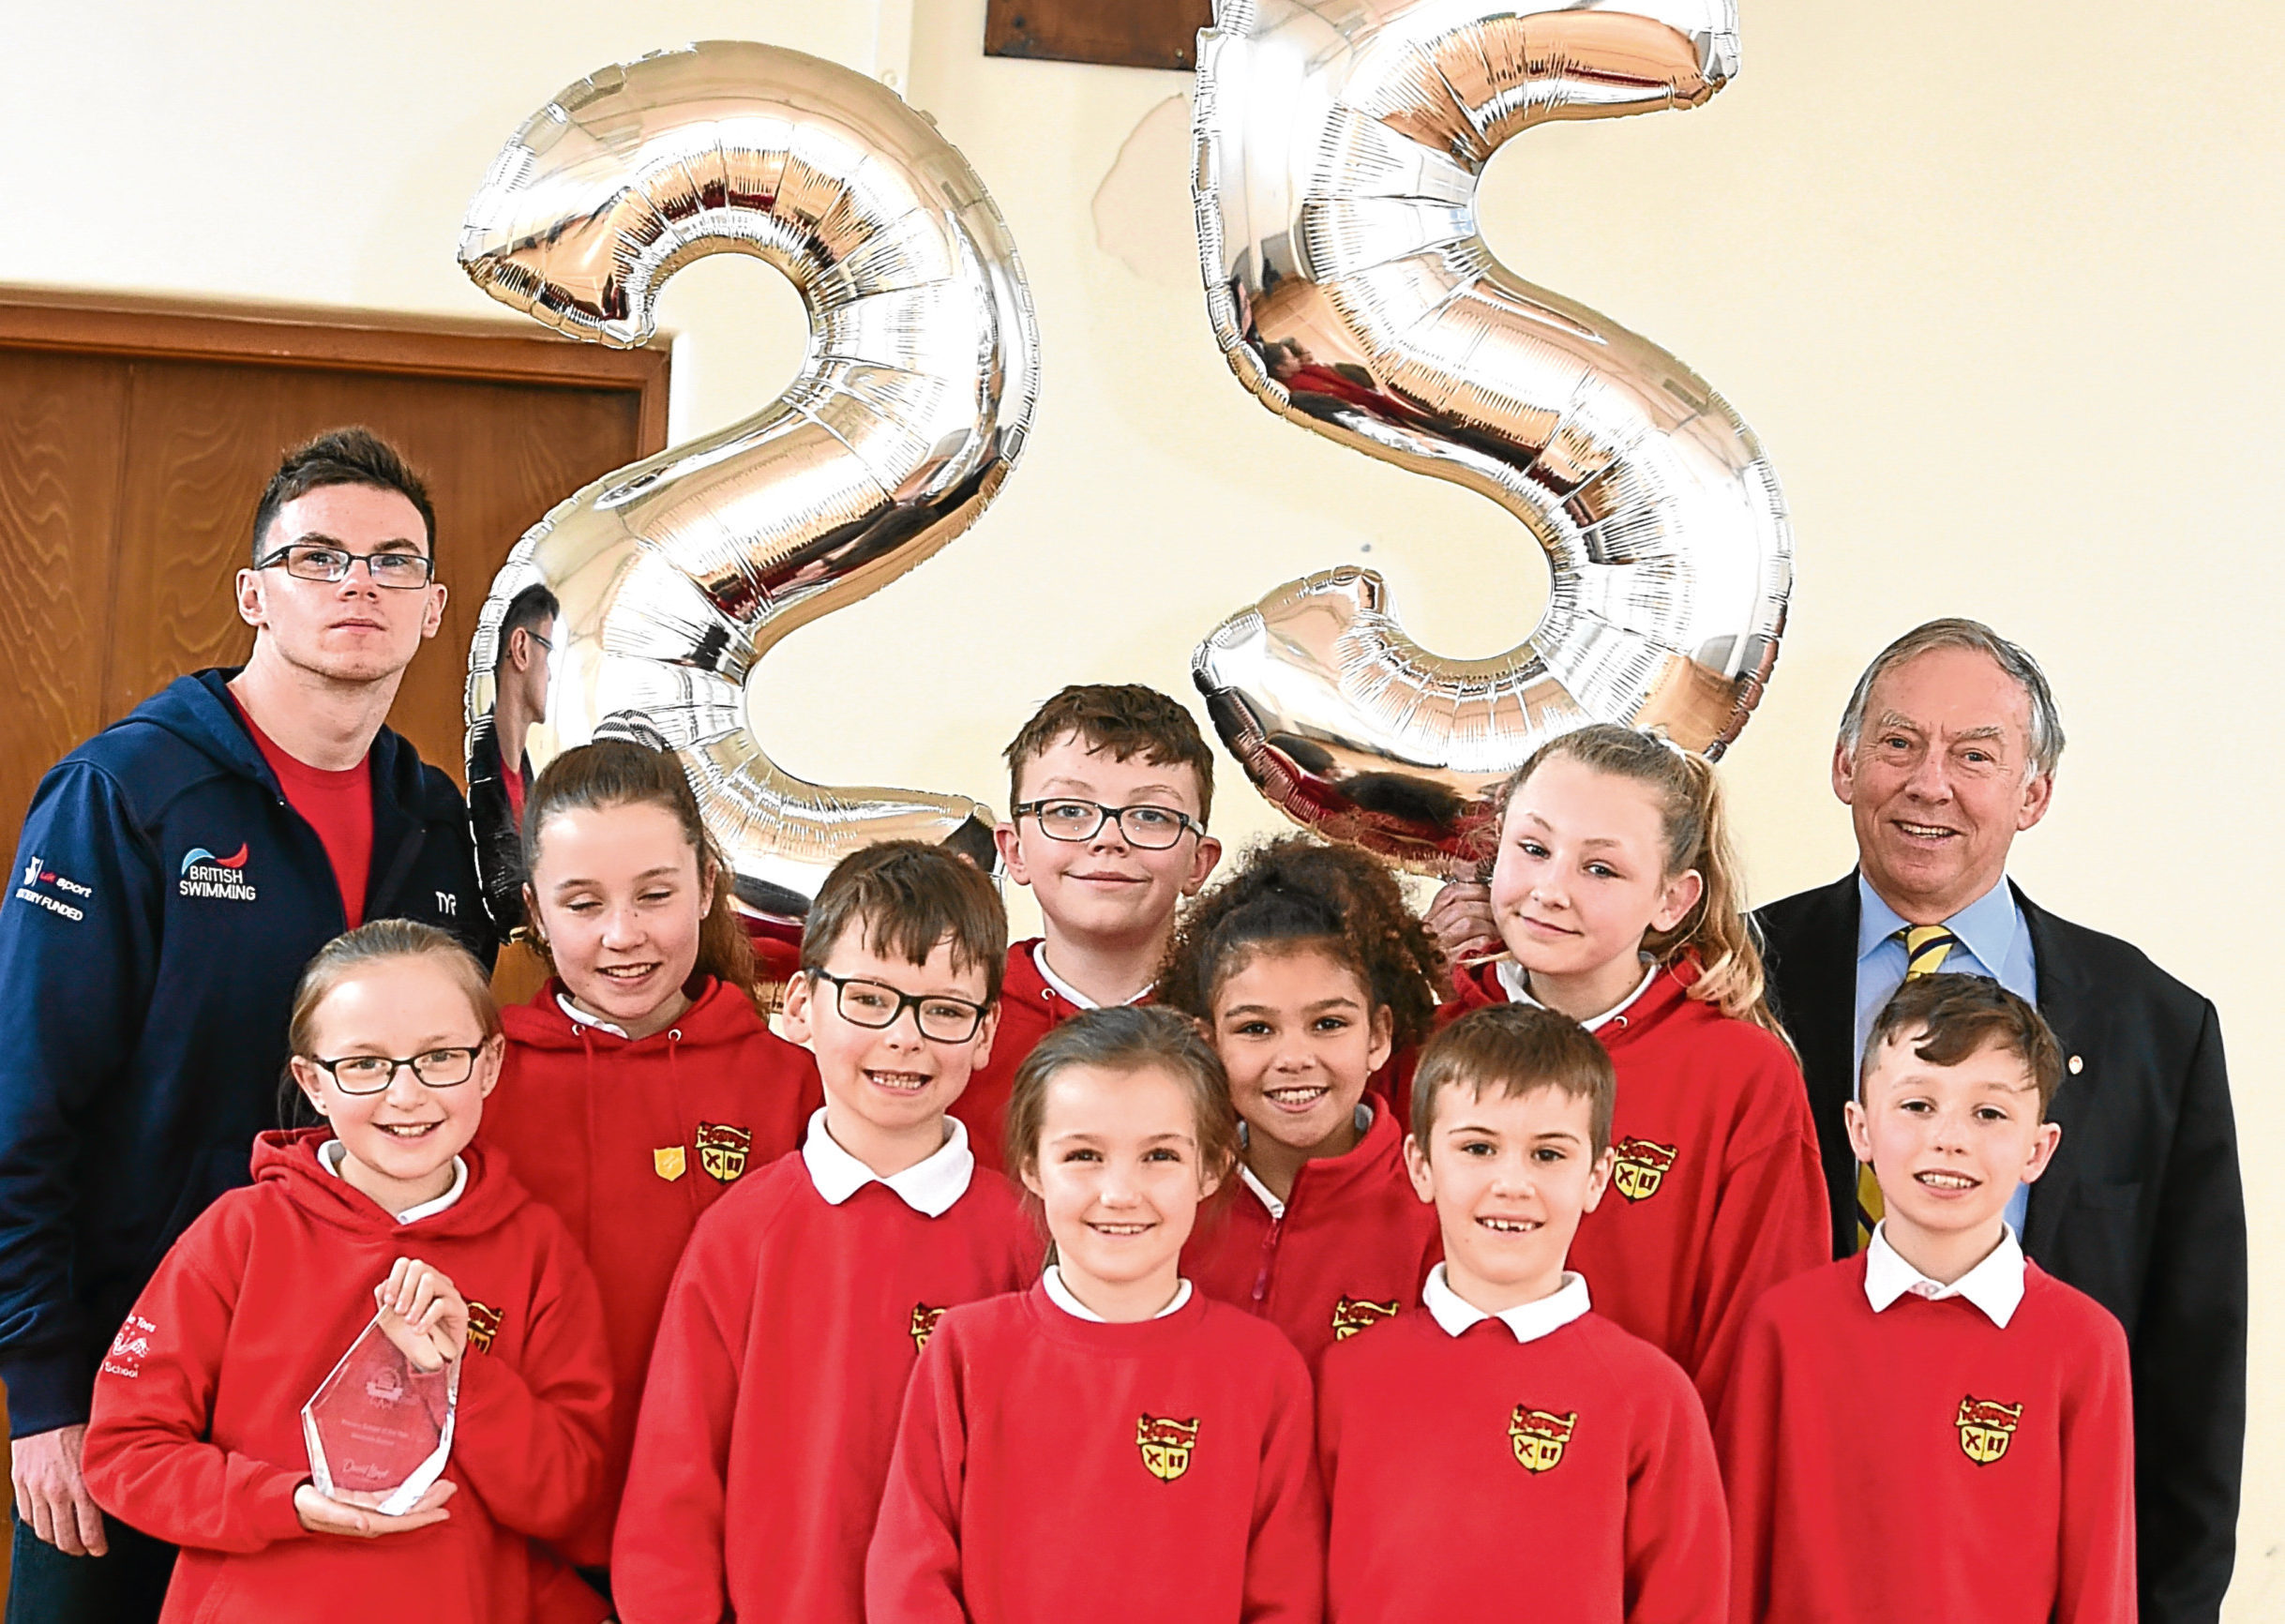 Thye youngsters of Westpark School celebrate 25 years of the Aberdeen sports awards